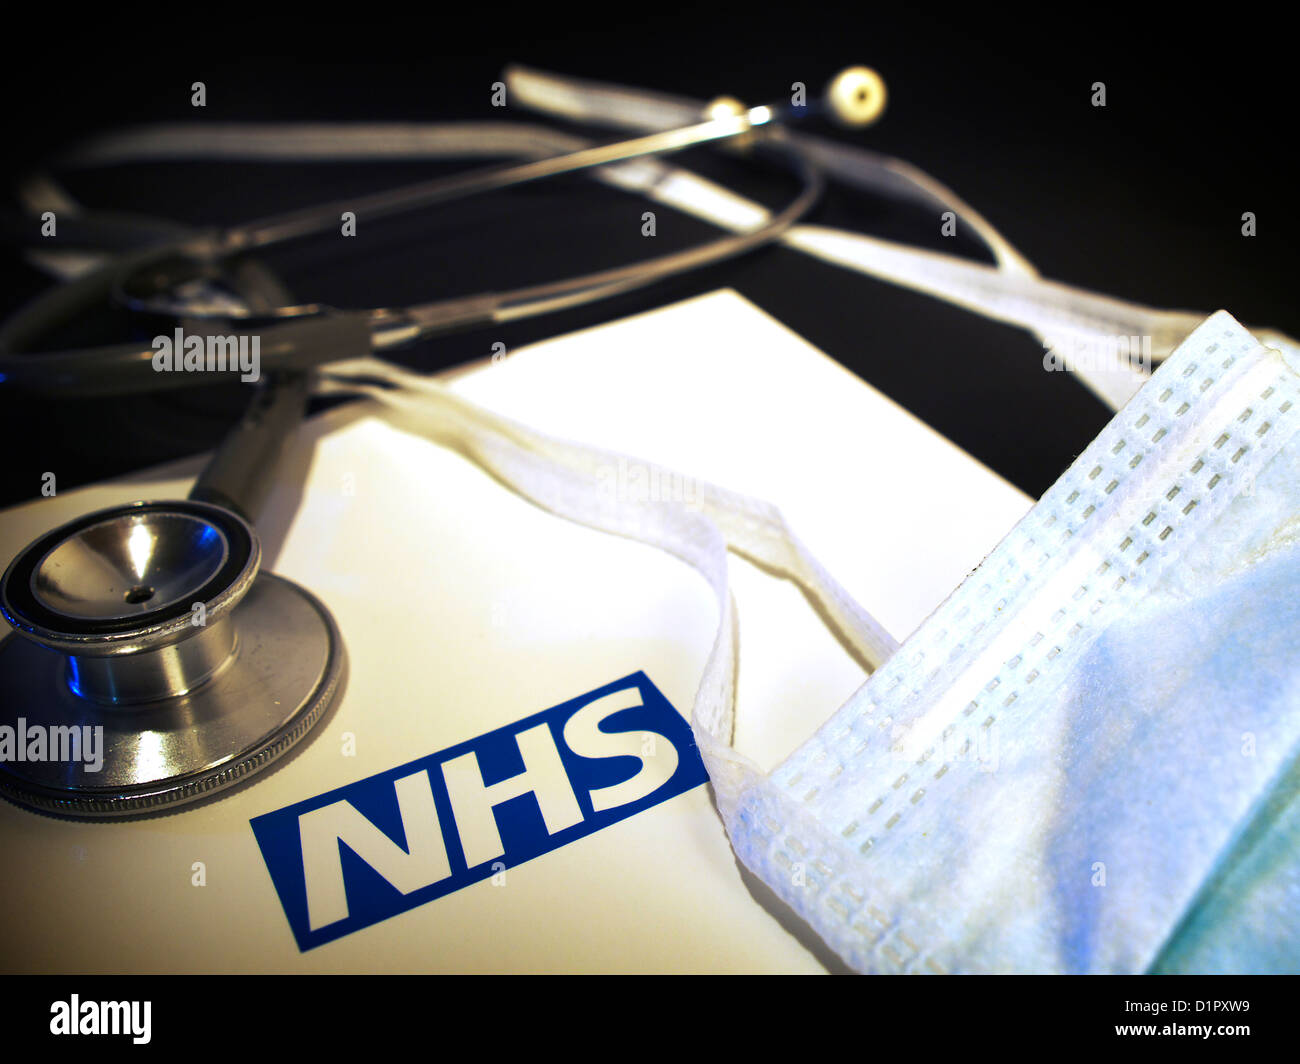 Still life of surgical mask and stethoscope with NHS logo - Stock Image